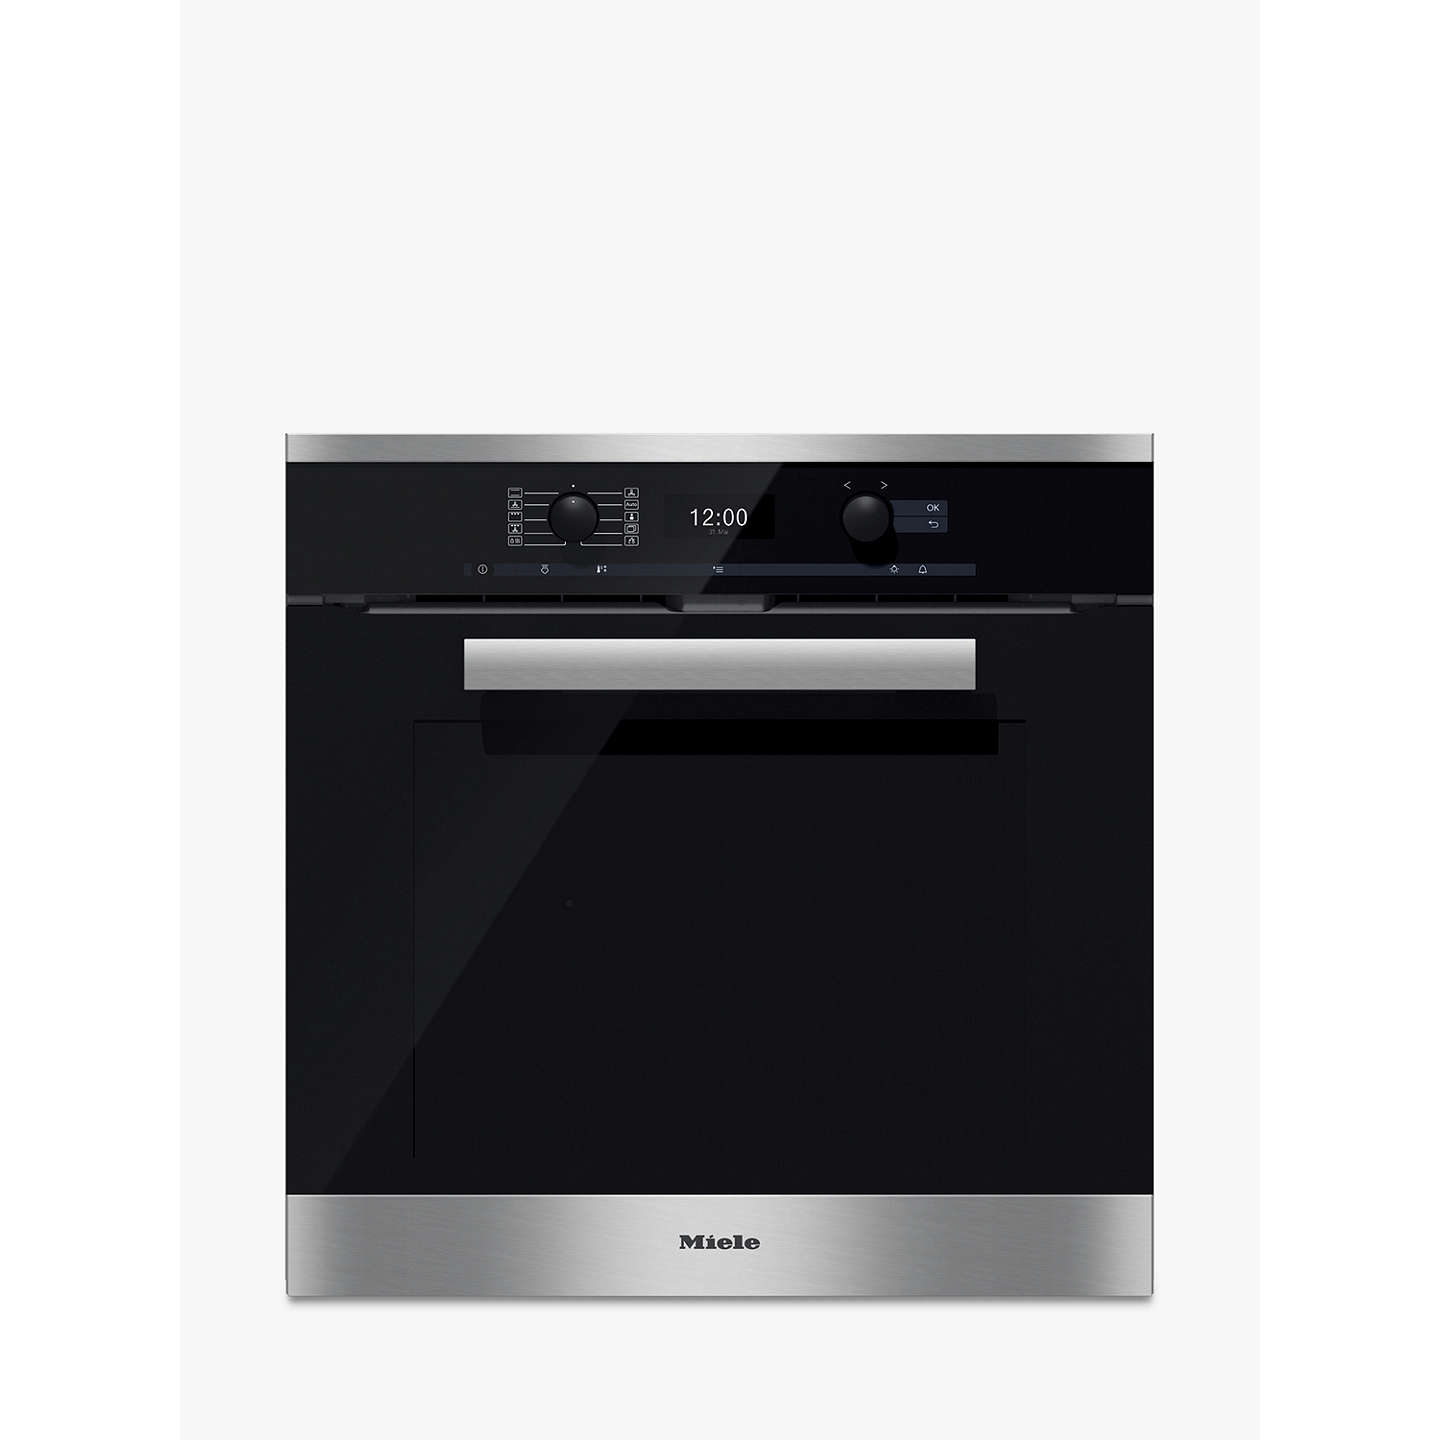 miele h6460bp pureline single electric oven clean steel at john lewis. Black Bedroom Furniture Sets. Home Design Ideas